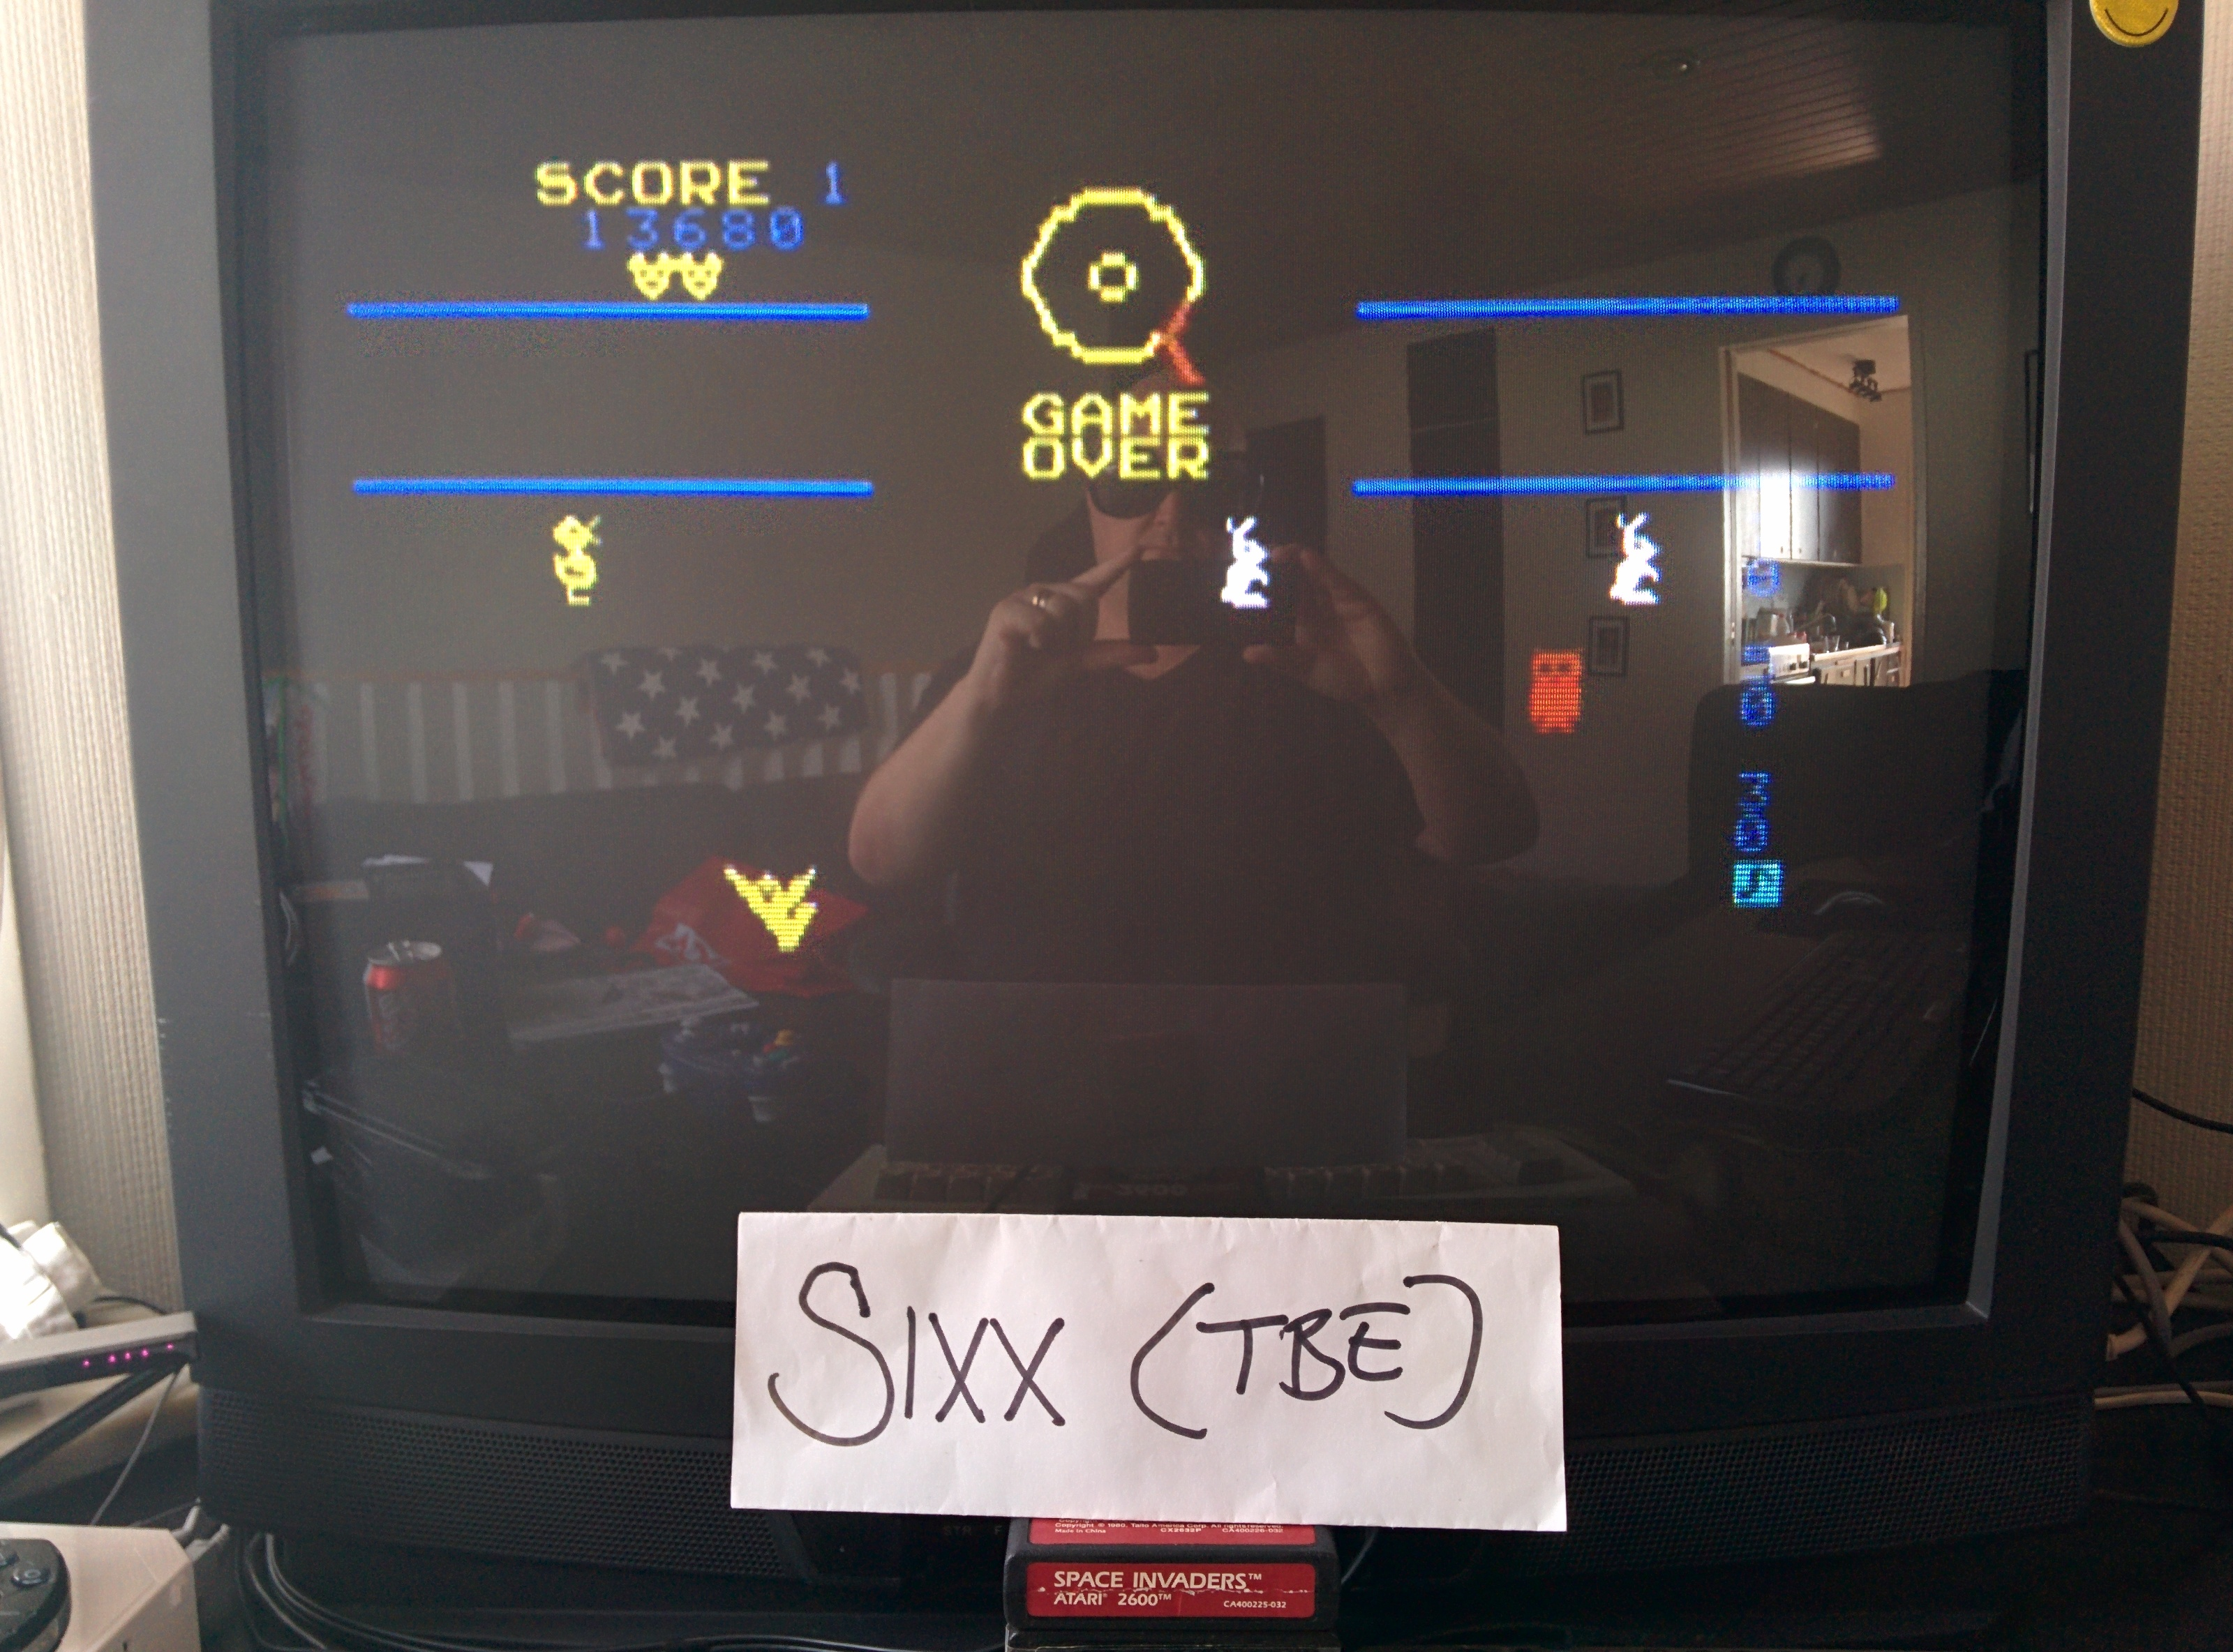 Sixx: Carnival (Colecovision Emulated) 13,680 points on 2014-07-26 09:26:03